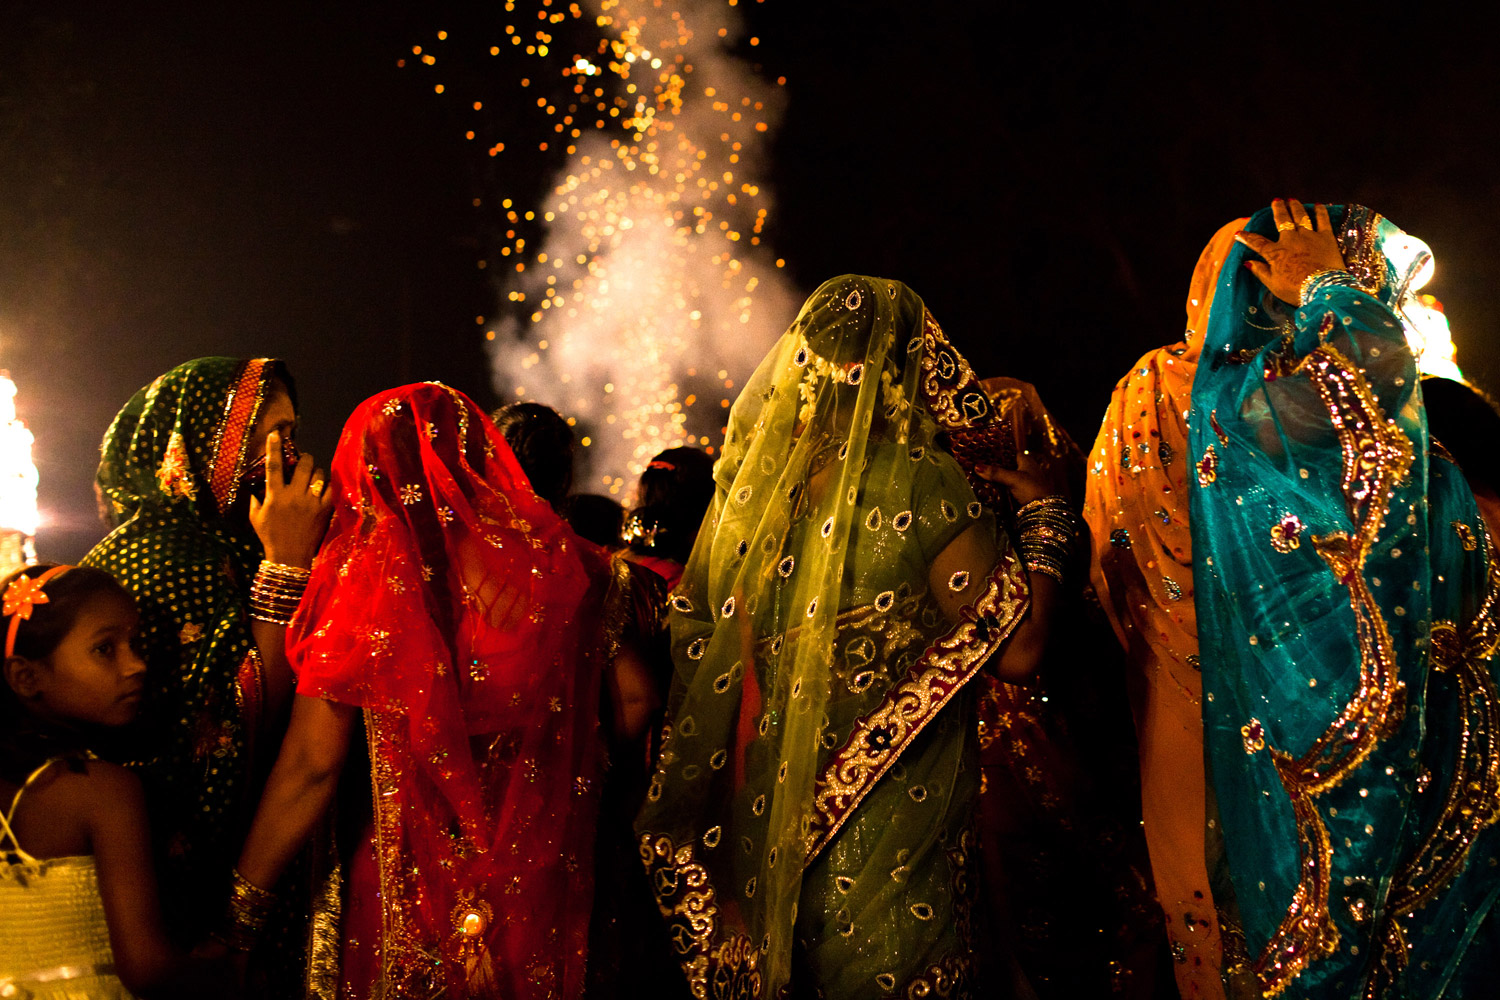 November 23, 2011. A girl looks on as women dressed in saris accompany a wedding procession in New Delhi, India. India's wedding season peaks from late October to early December each year as couples choose to wed in these auspicious months. The Indian wedding traditionally starts with a procession which sees the groom riding or drawn by a carriage with a white horse, escorted by close family and friends, a brass band and a mobile lighting crew powered by a diesel generator. Guests in attendance dance and celebrate through the streets, showering the groom with rupee notes, until they arrive to the final destination of the wedding.